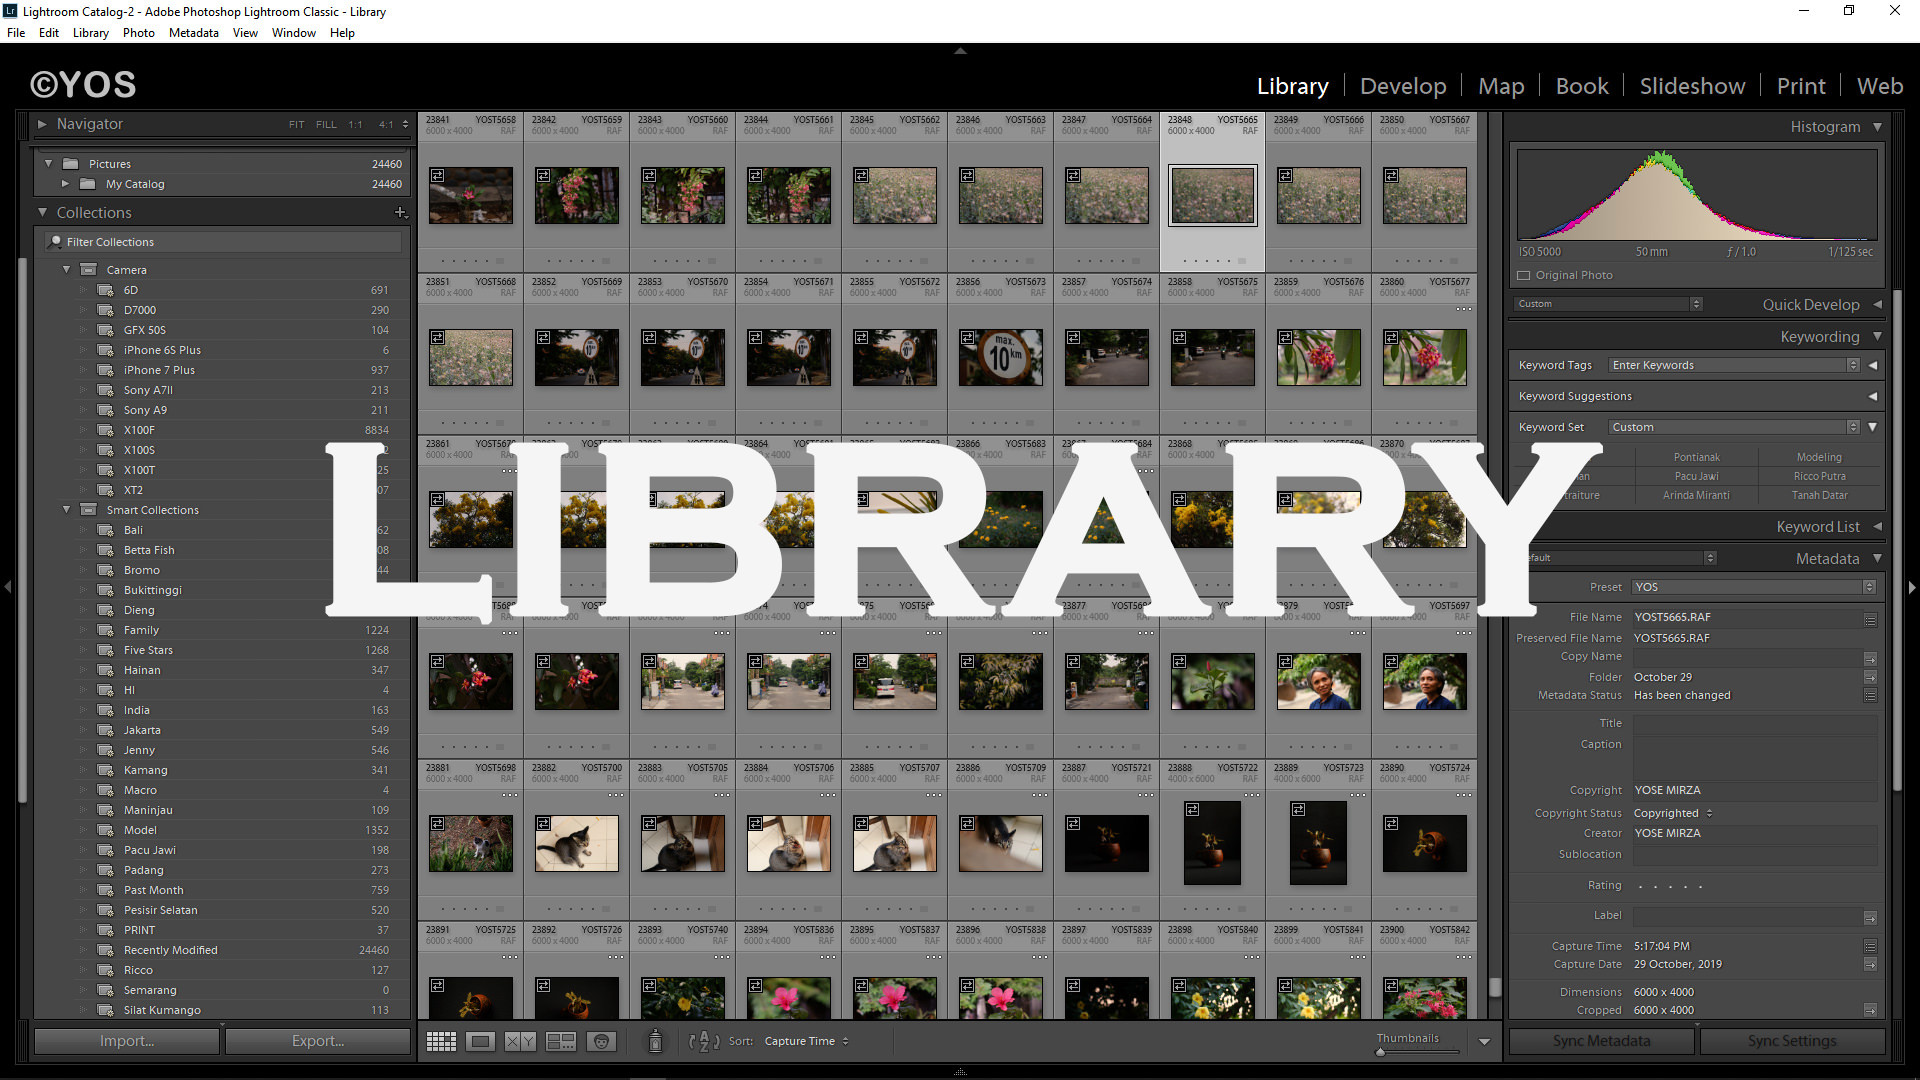 Library Module